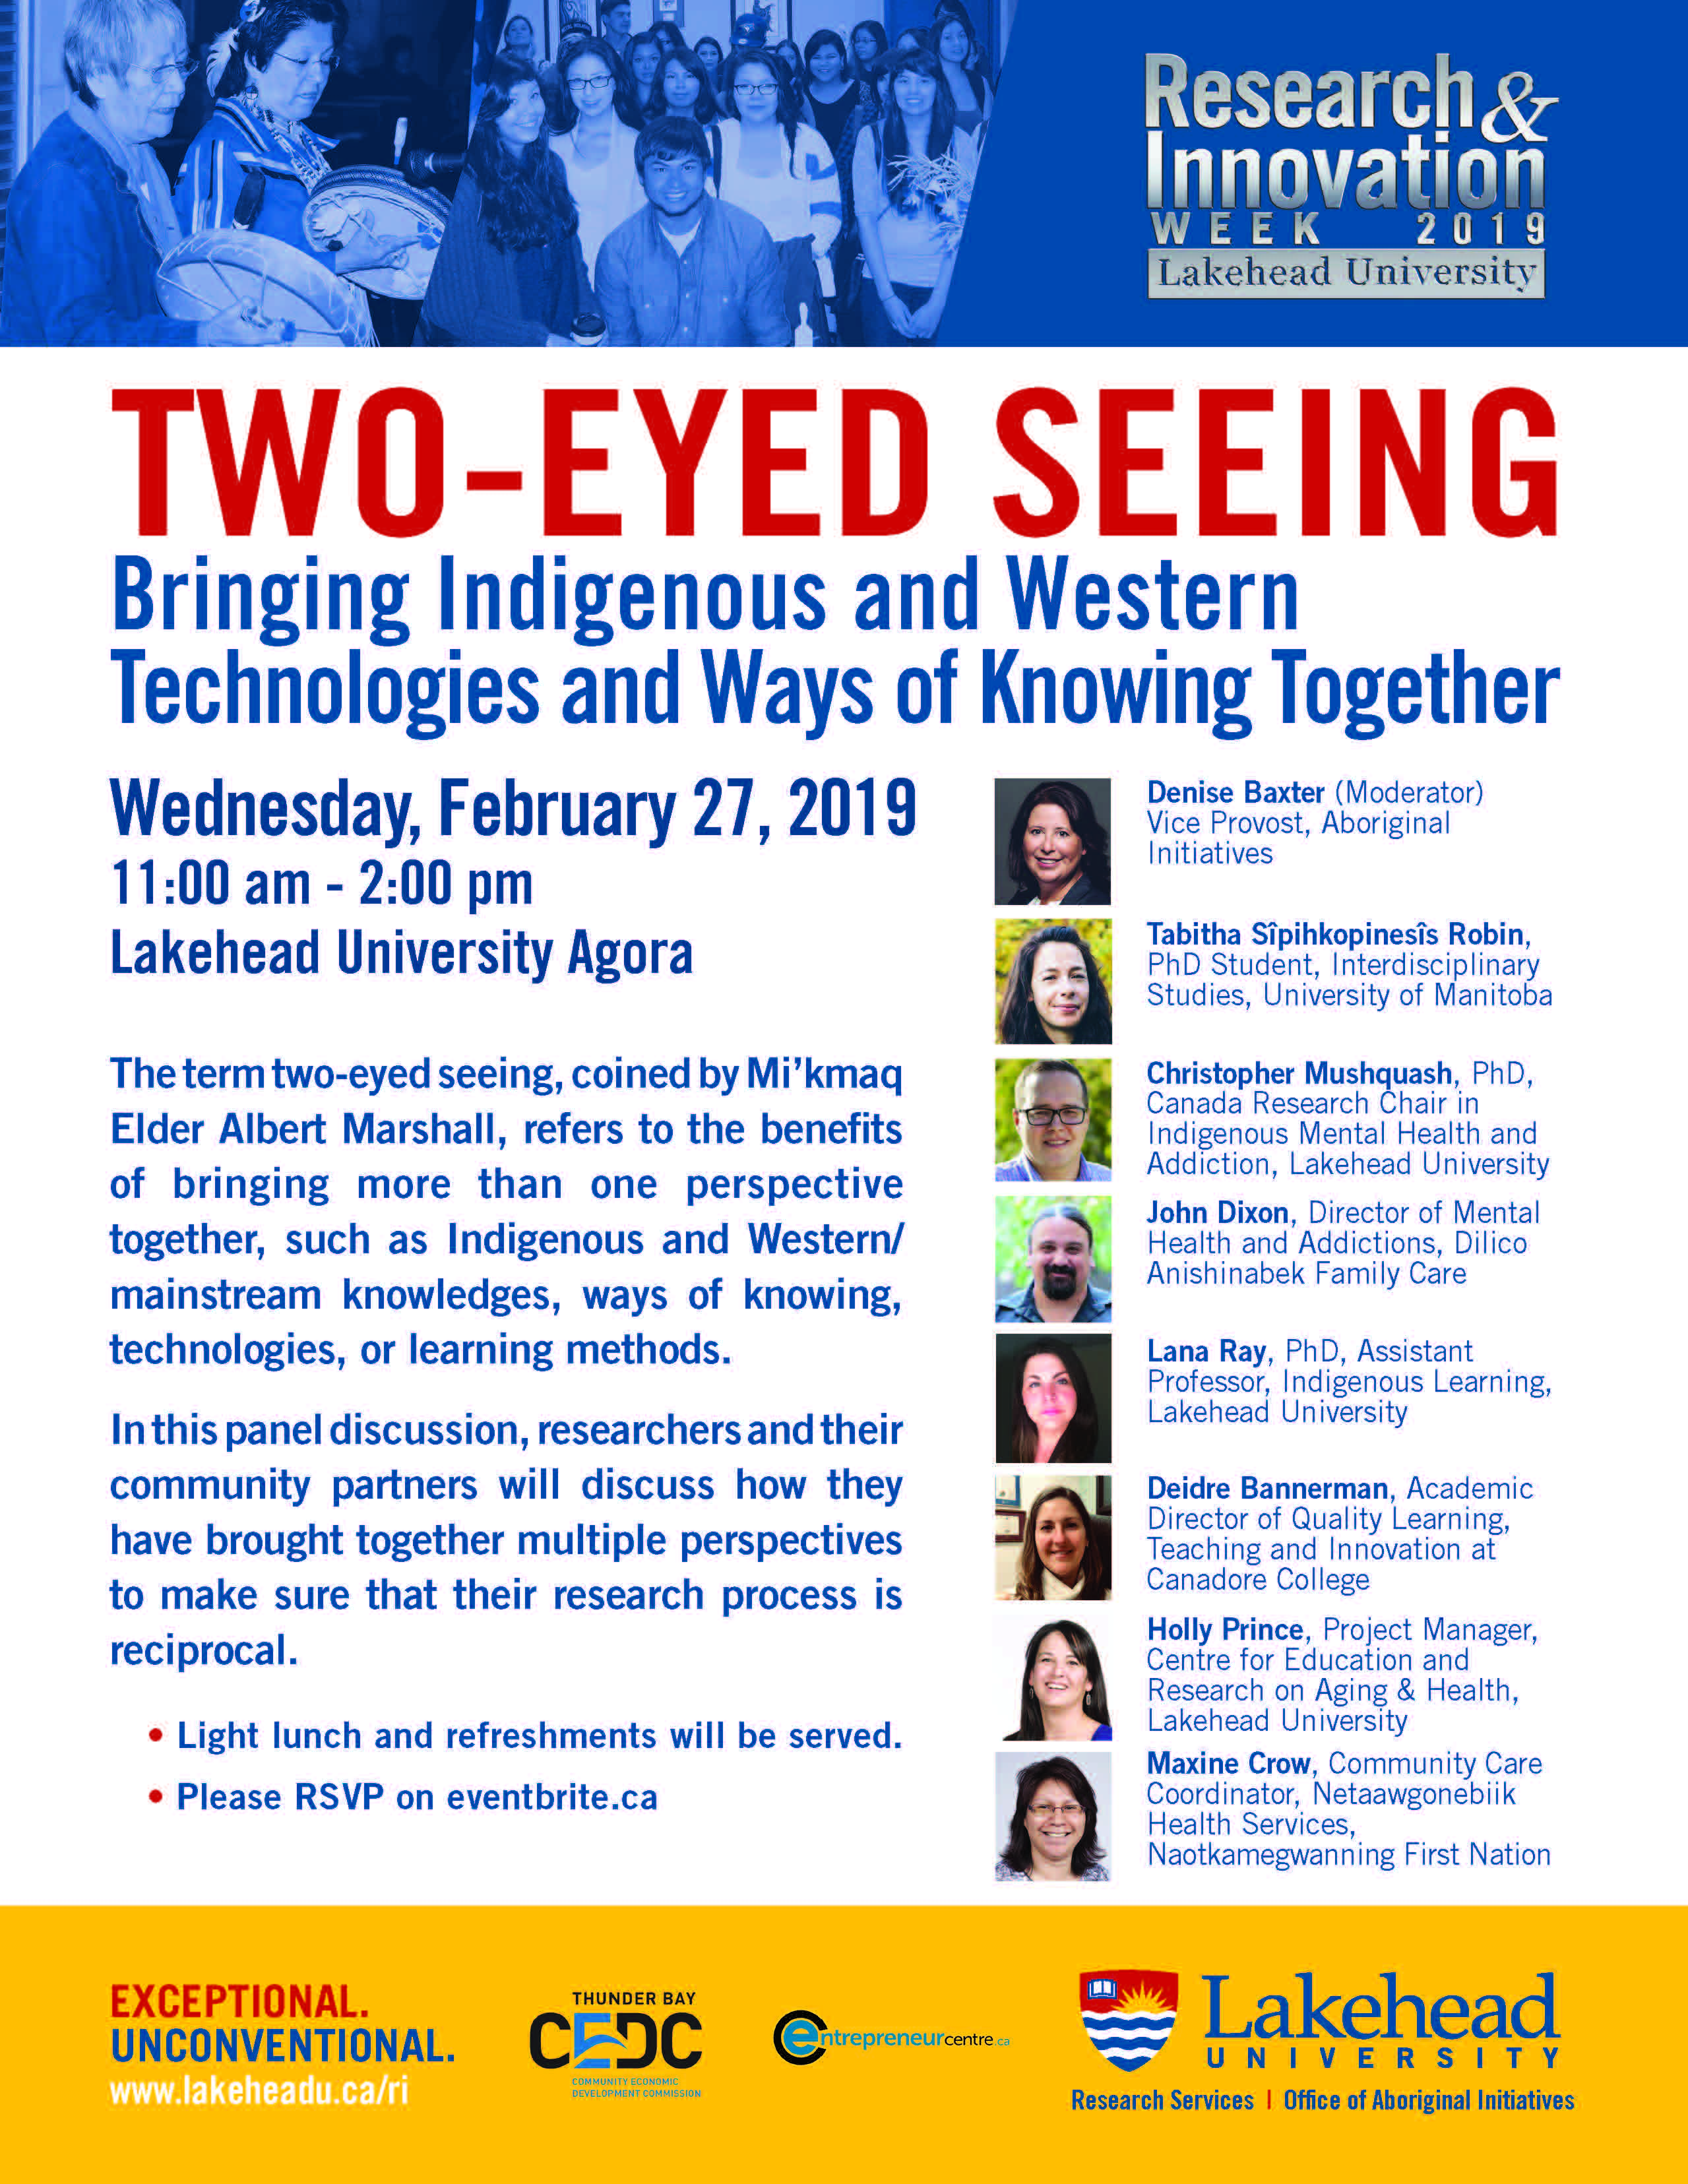 Two-Eyed Seeing Bringing Indigenous and Western Technologies and Ways of Knowing Together